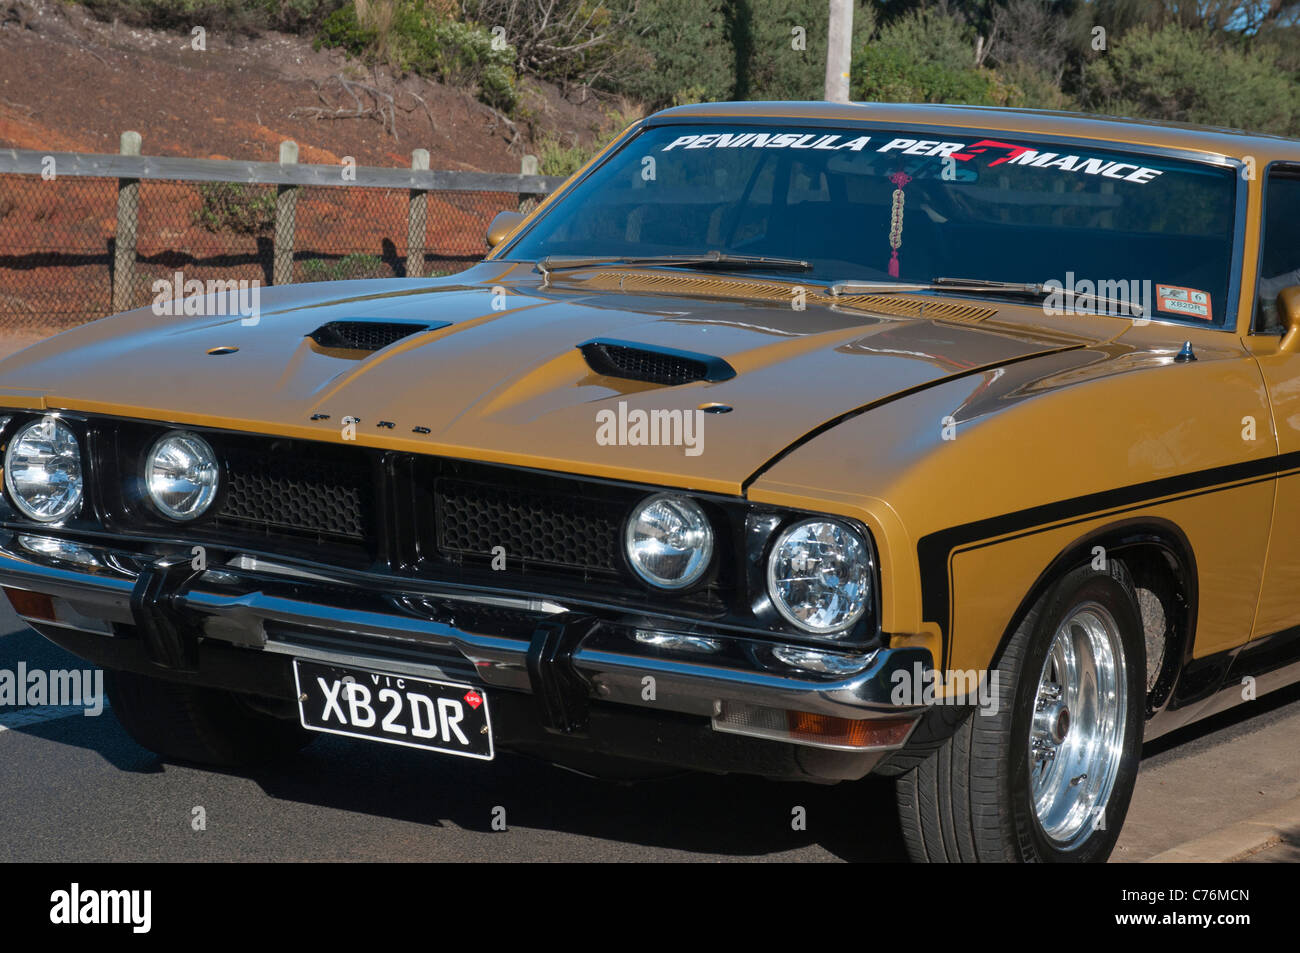 Ford Falcon Fairmont Xb Sedan Victoria Australia Stock